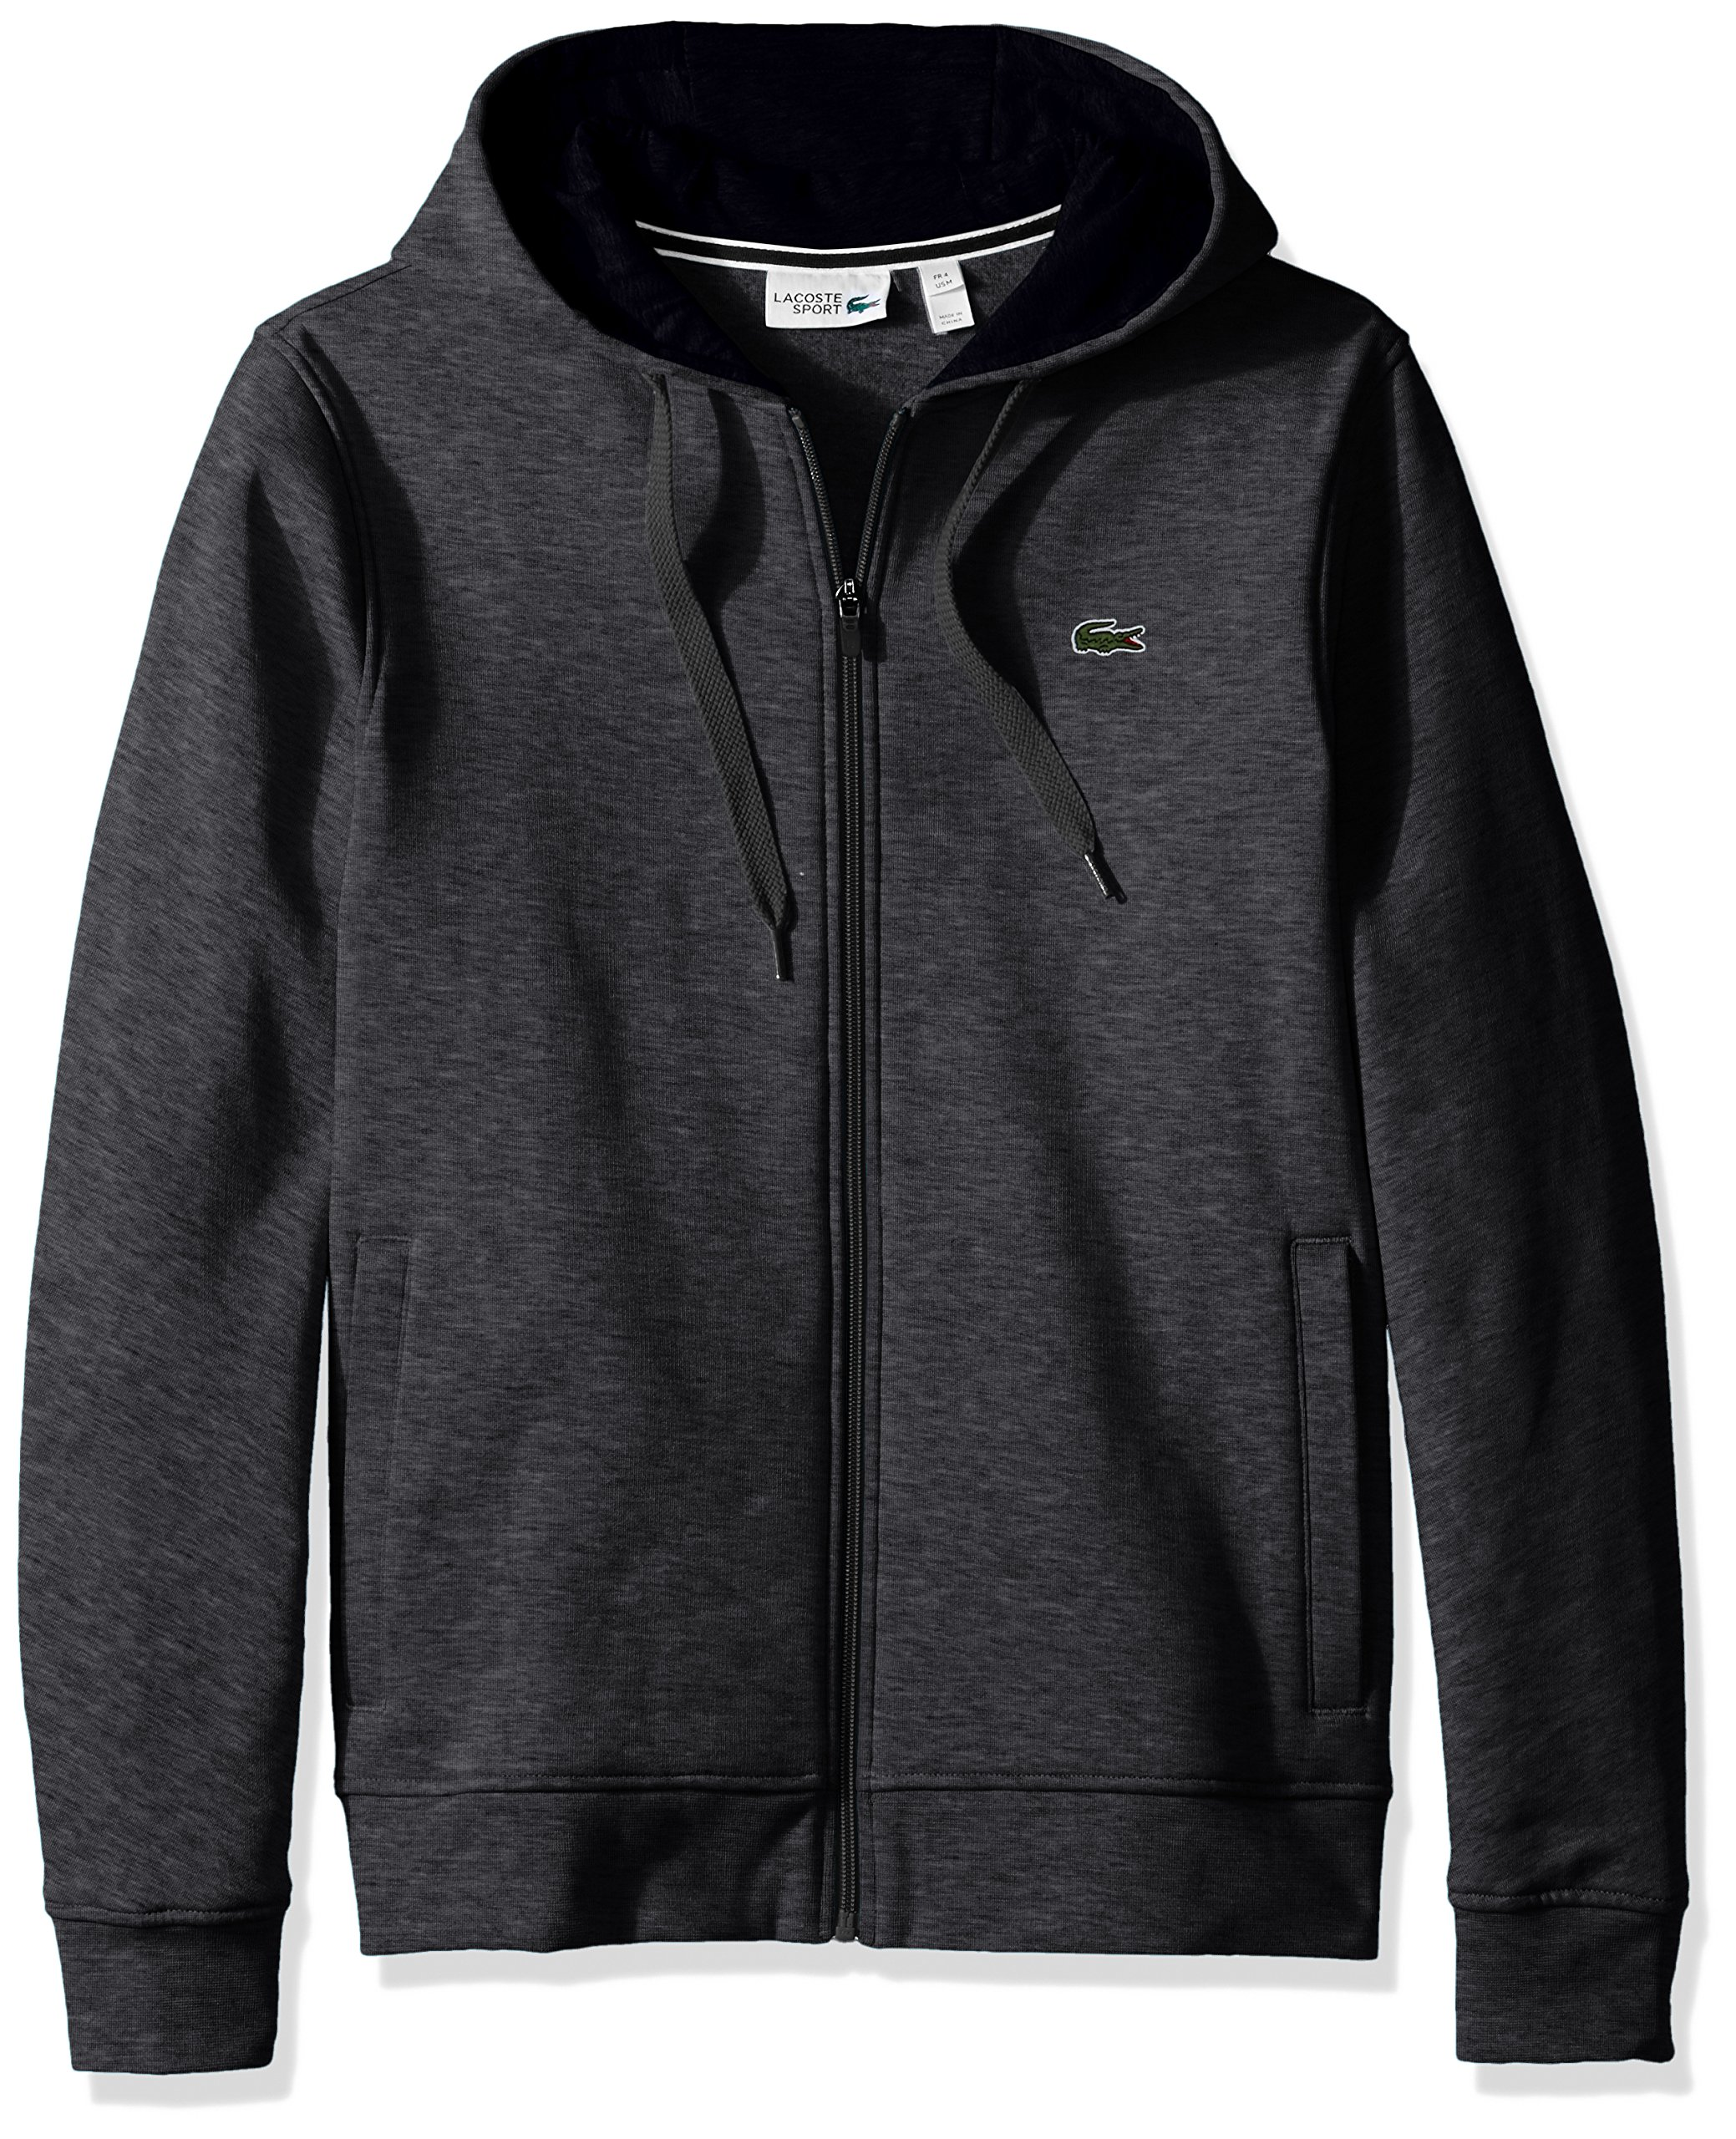 Lacoste Men's Full Zip Hoodie Fleece Sweatshirt, Pitch/Navy Blue, Small